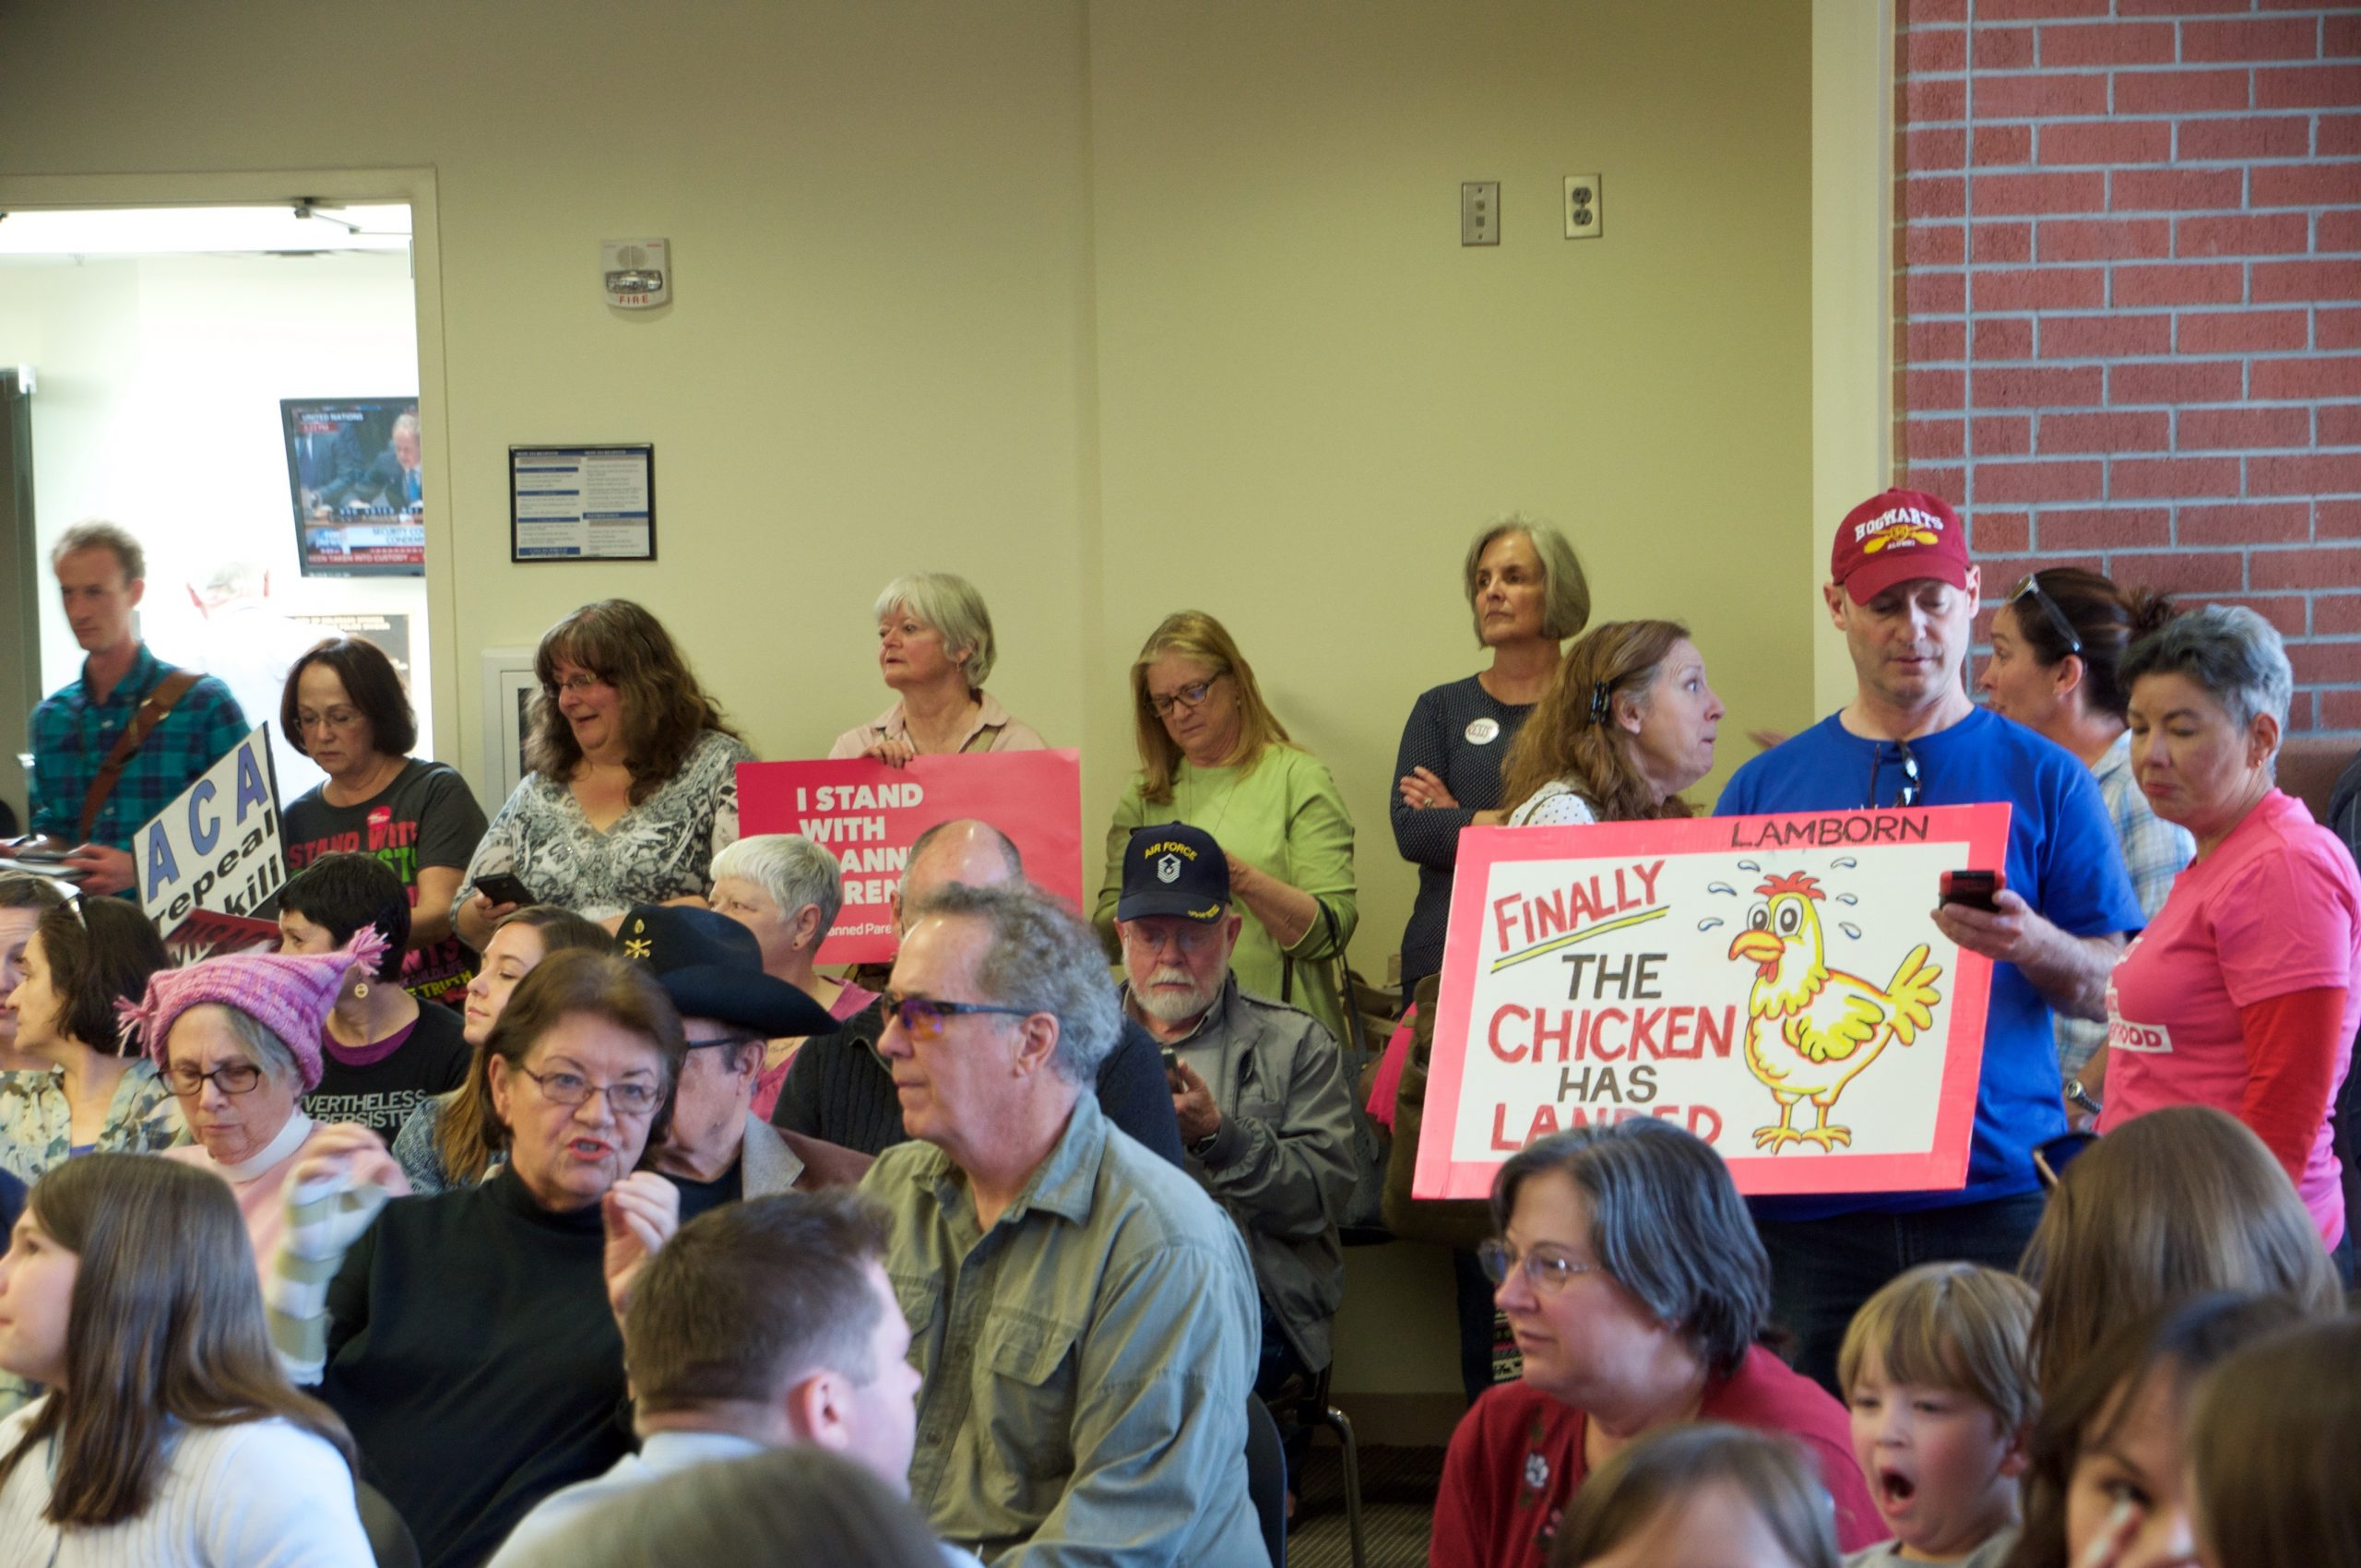 A standing-room-only crowd waits for Rep. Lamborn to arrive at a town hall meeting in Colorado Springs.